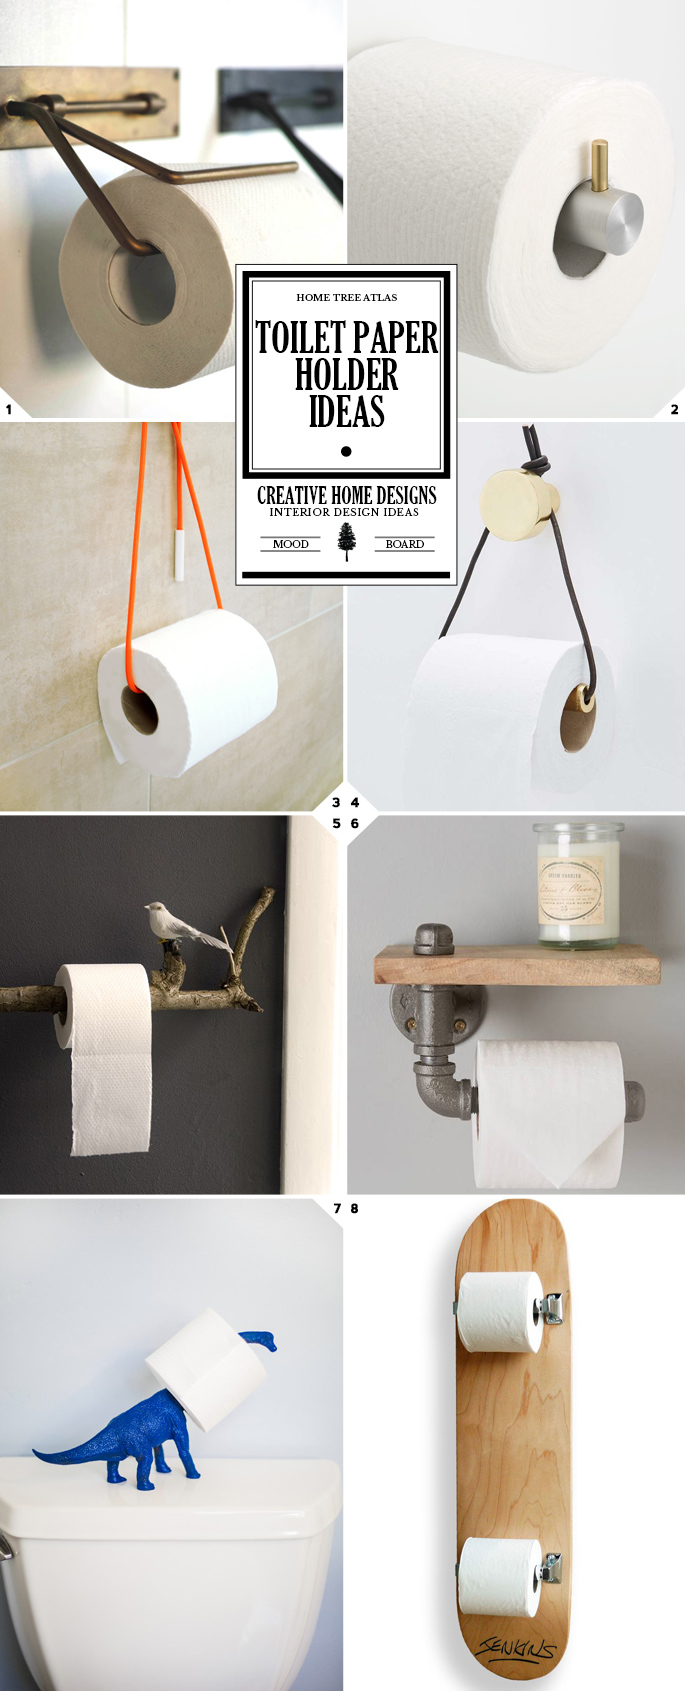 Toilet paper holder ideas from diy ideas to modern designs